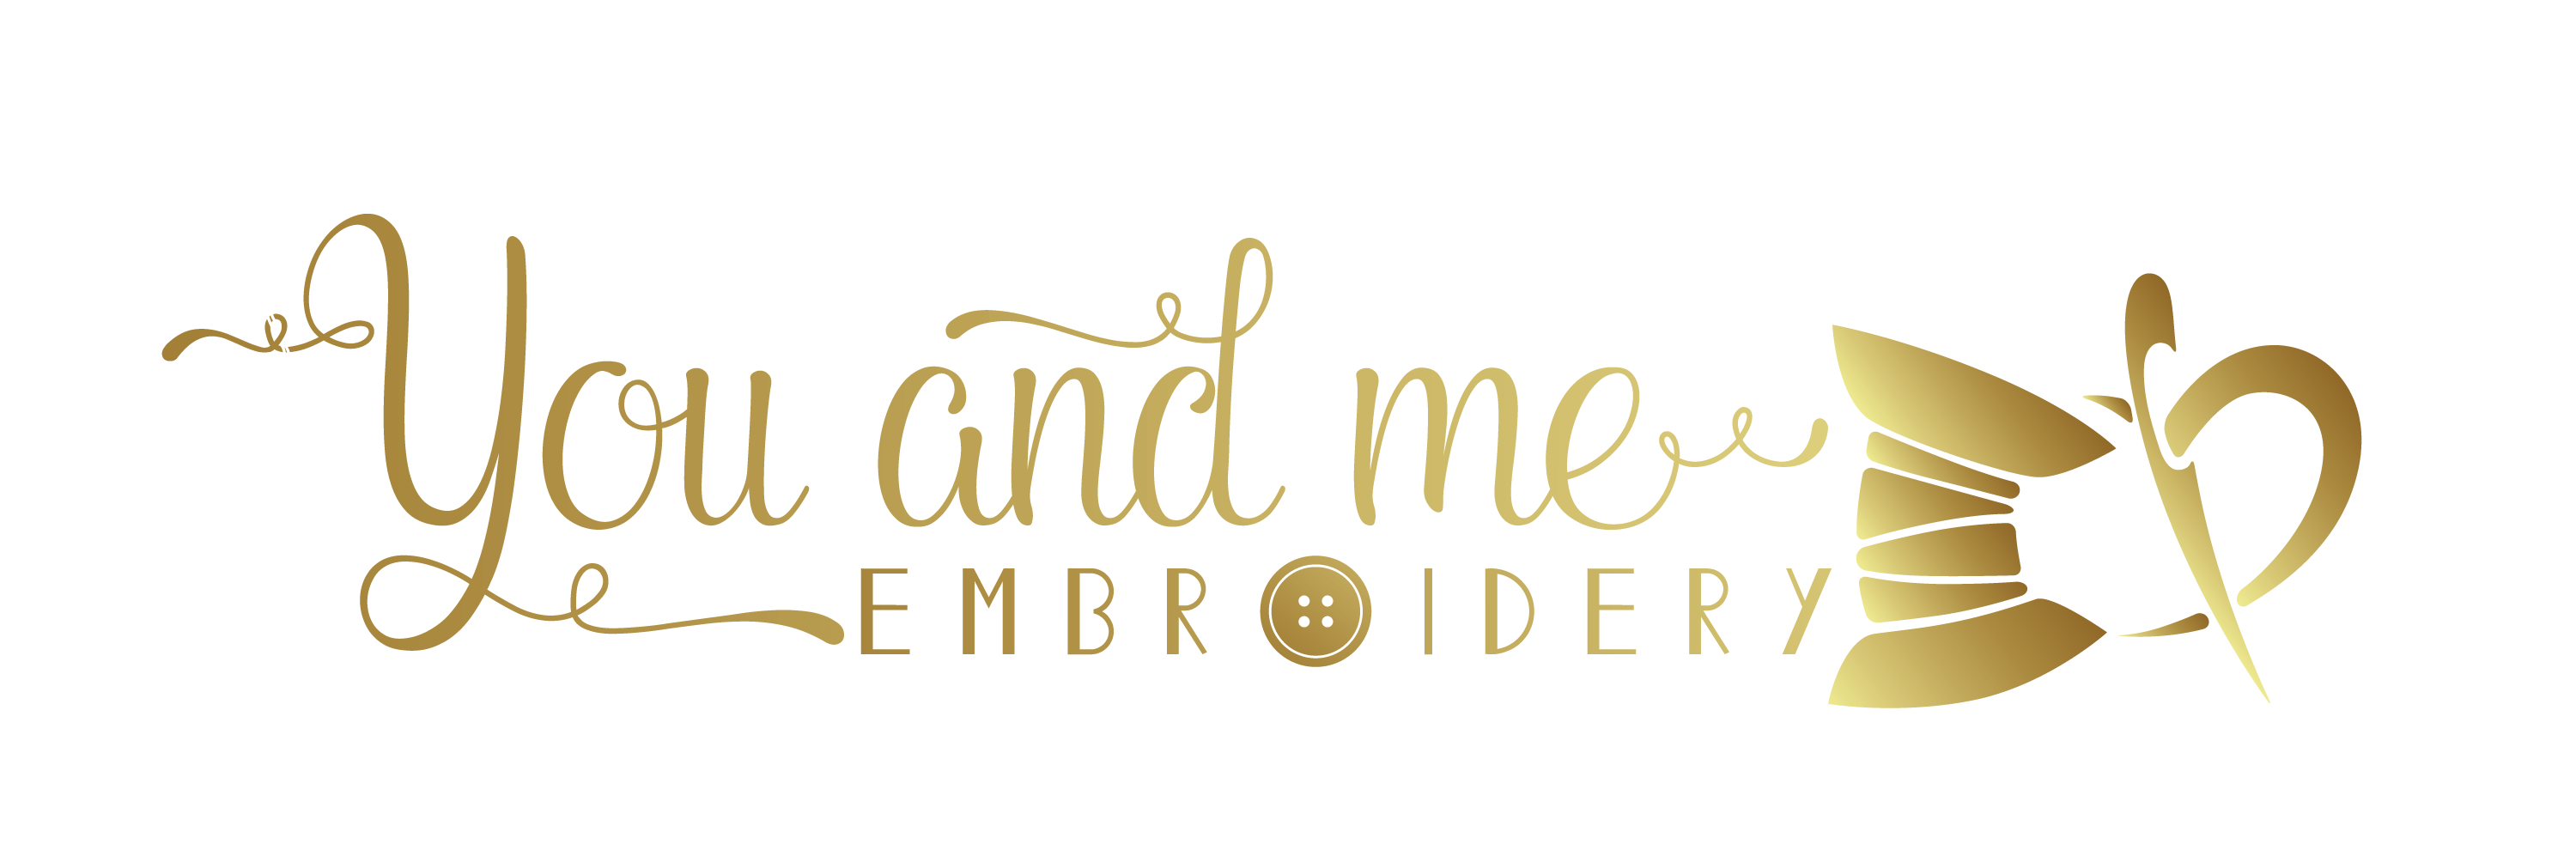 Free personalised embroidery